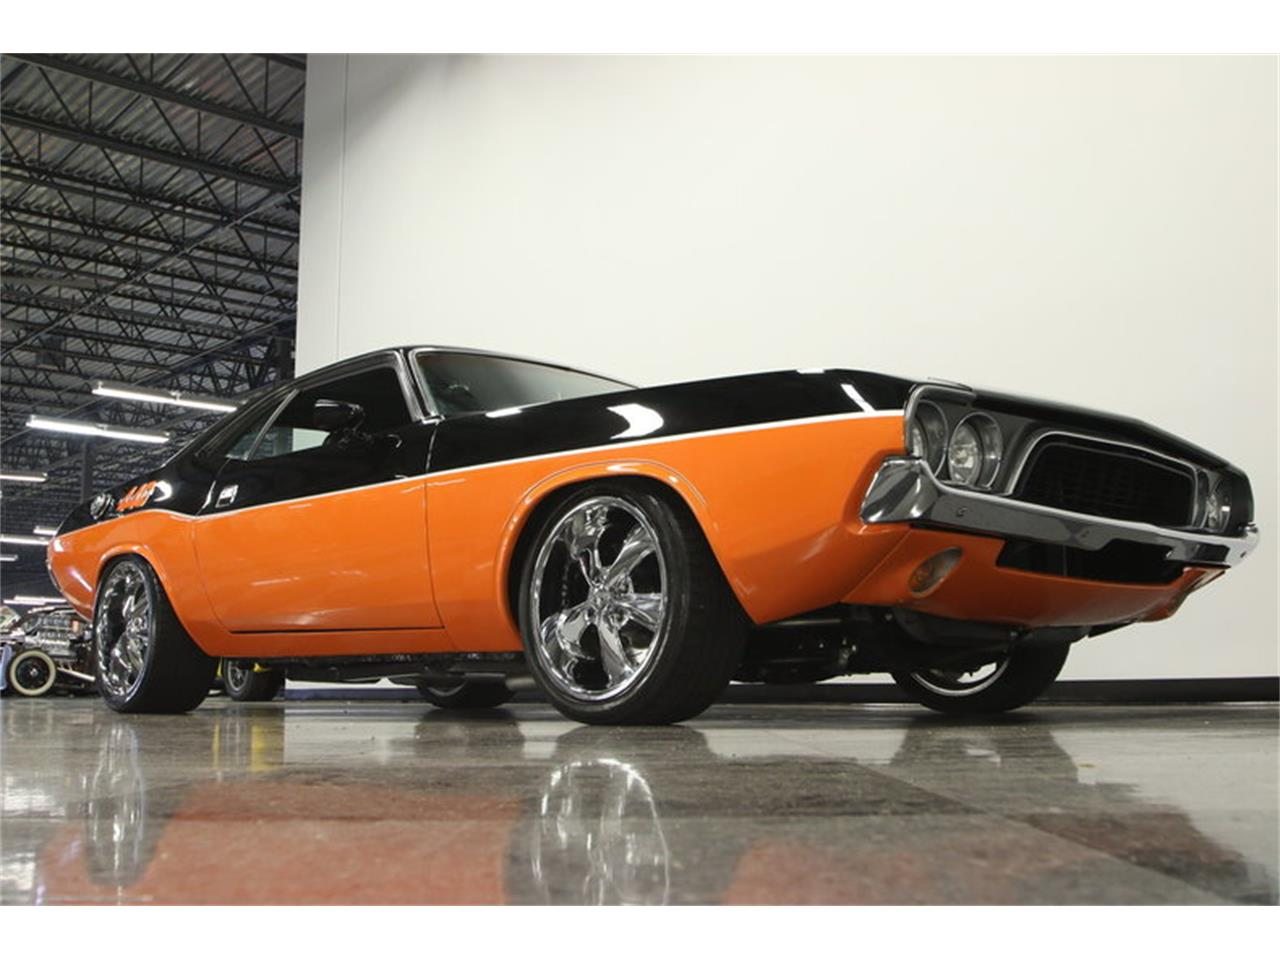 Large Picture of 1972 Dodge Challenger located in Florida - $59,995.00 Offered by Streetside Classics - Tampa - KK0B